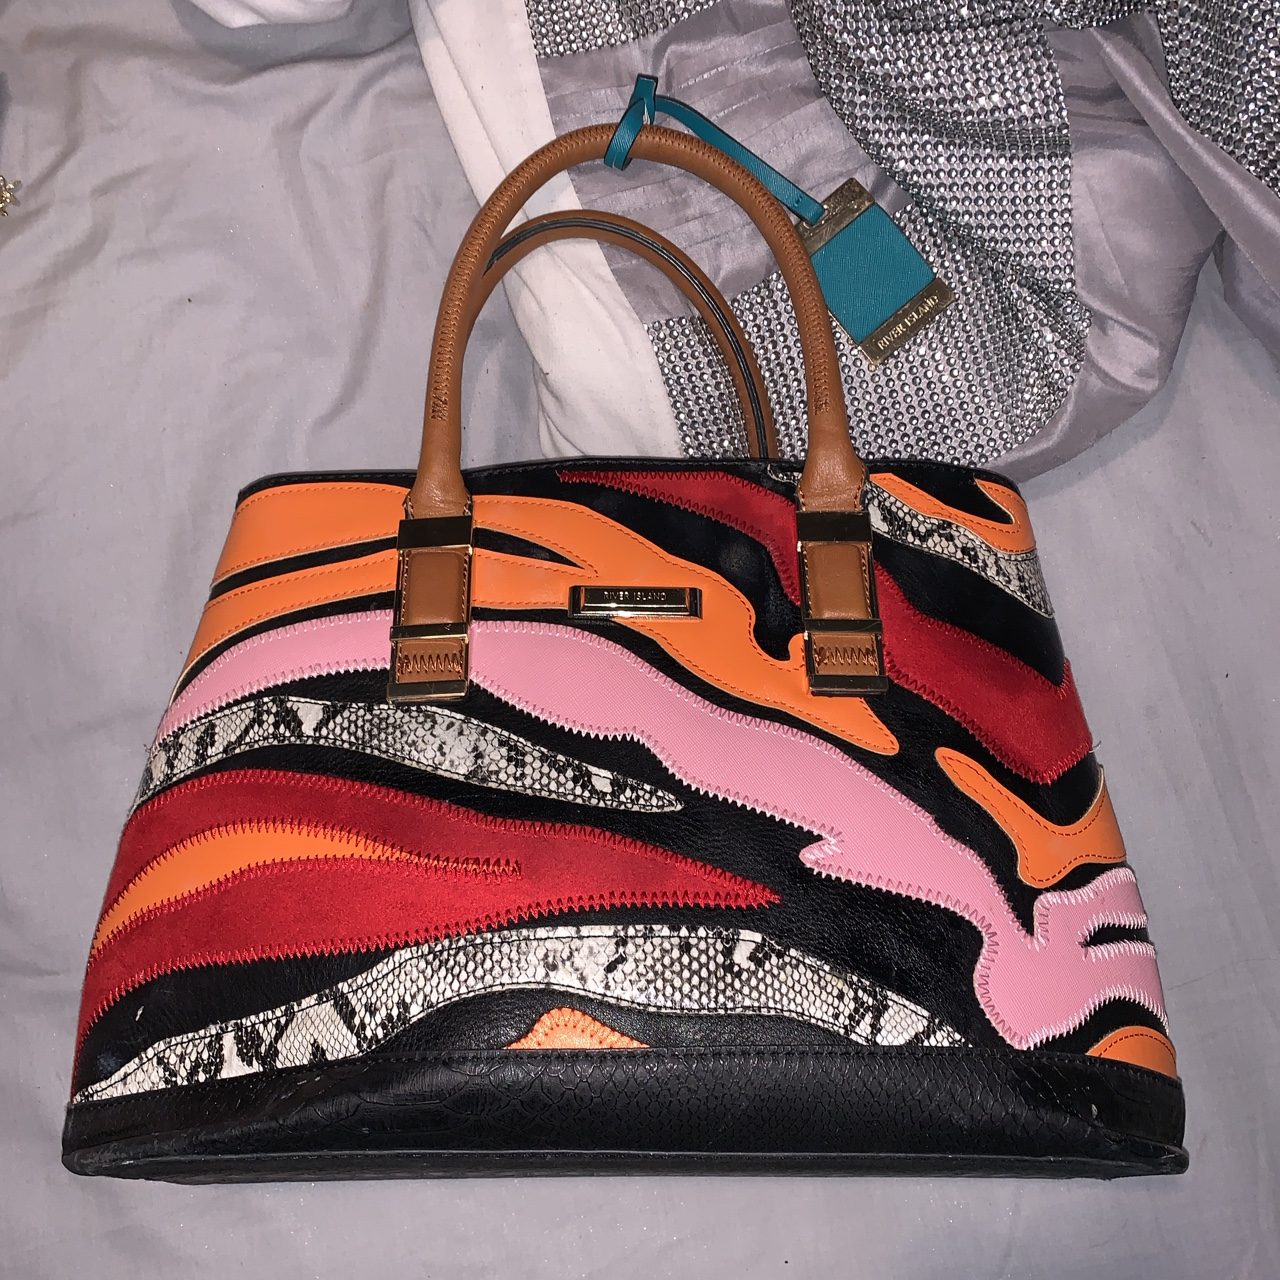 Product Image 1 - River island bag 8/10 condition Few makeup